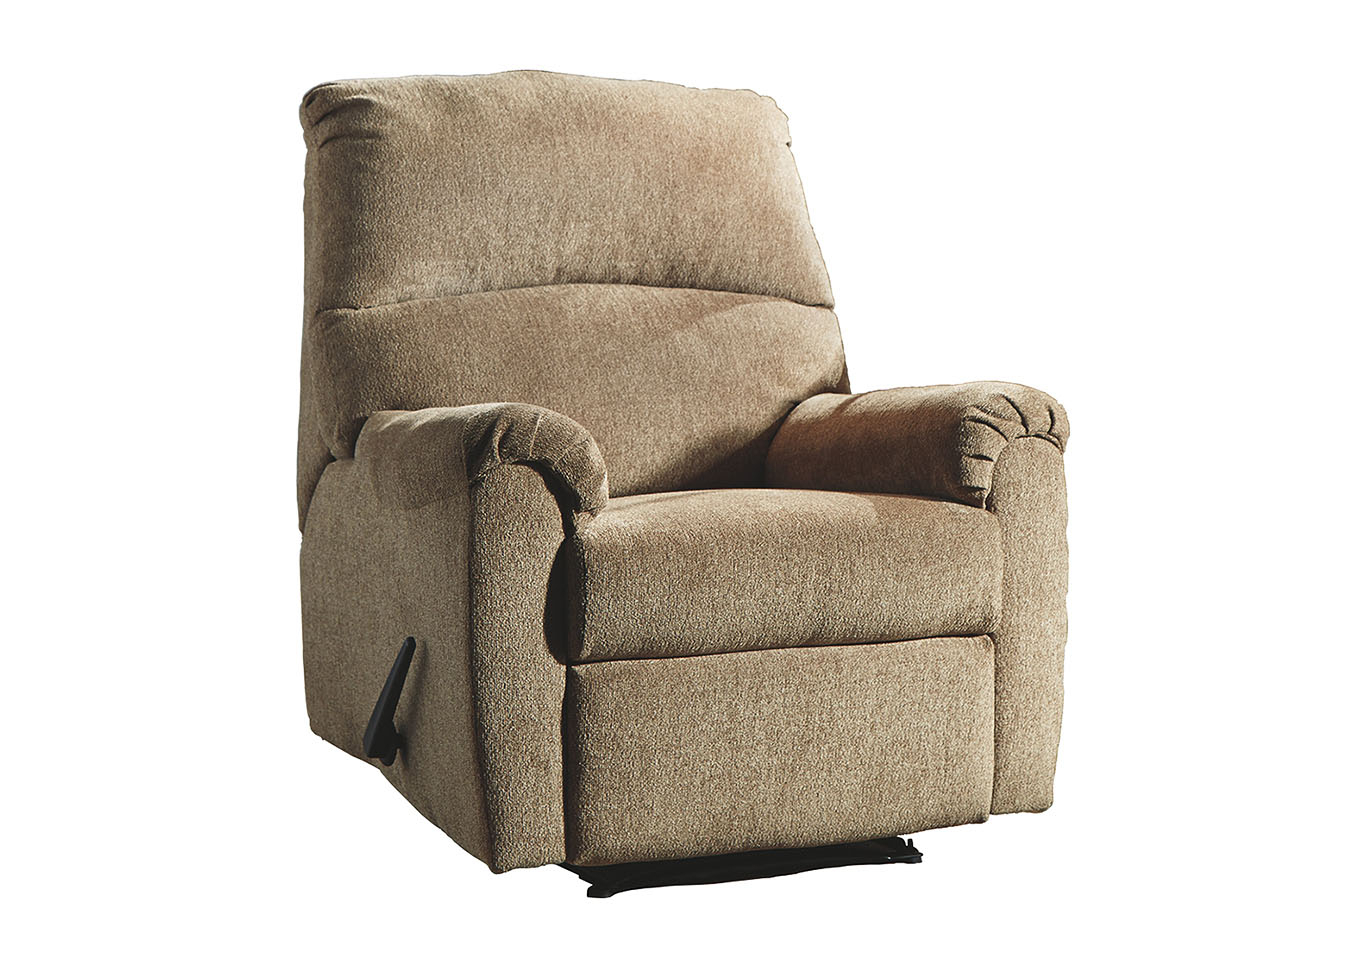 Nerviano Mocha Recliner J&D Furniture | Vineland, Nj With Vineland Polyester Swivel Armchairs (View 8 of 15)